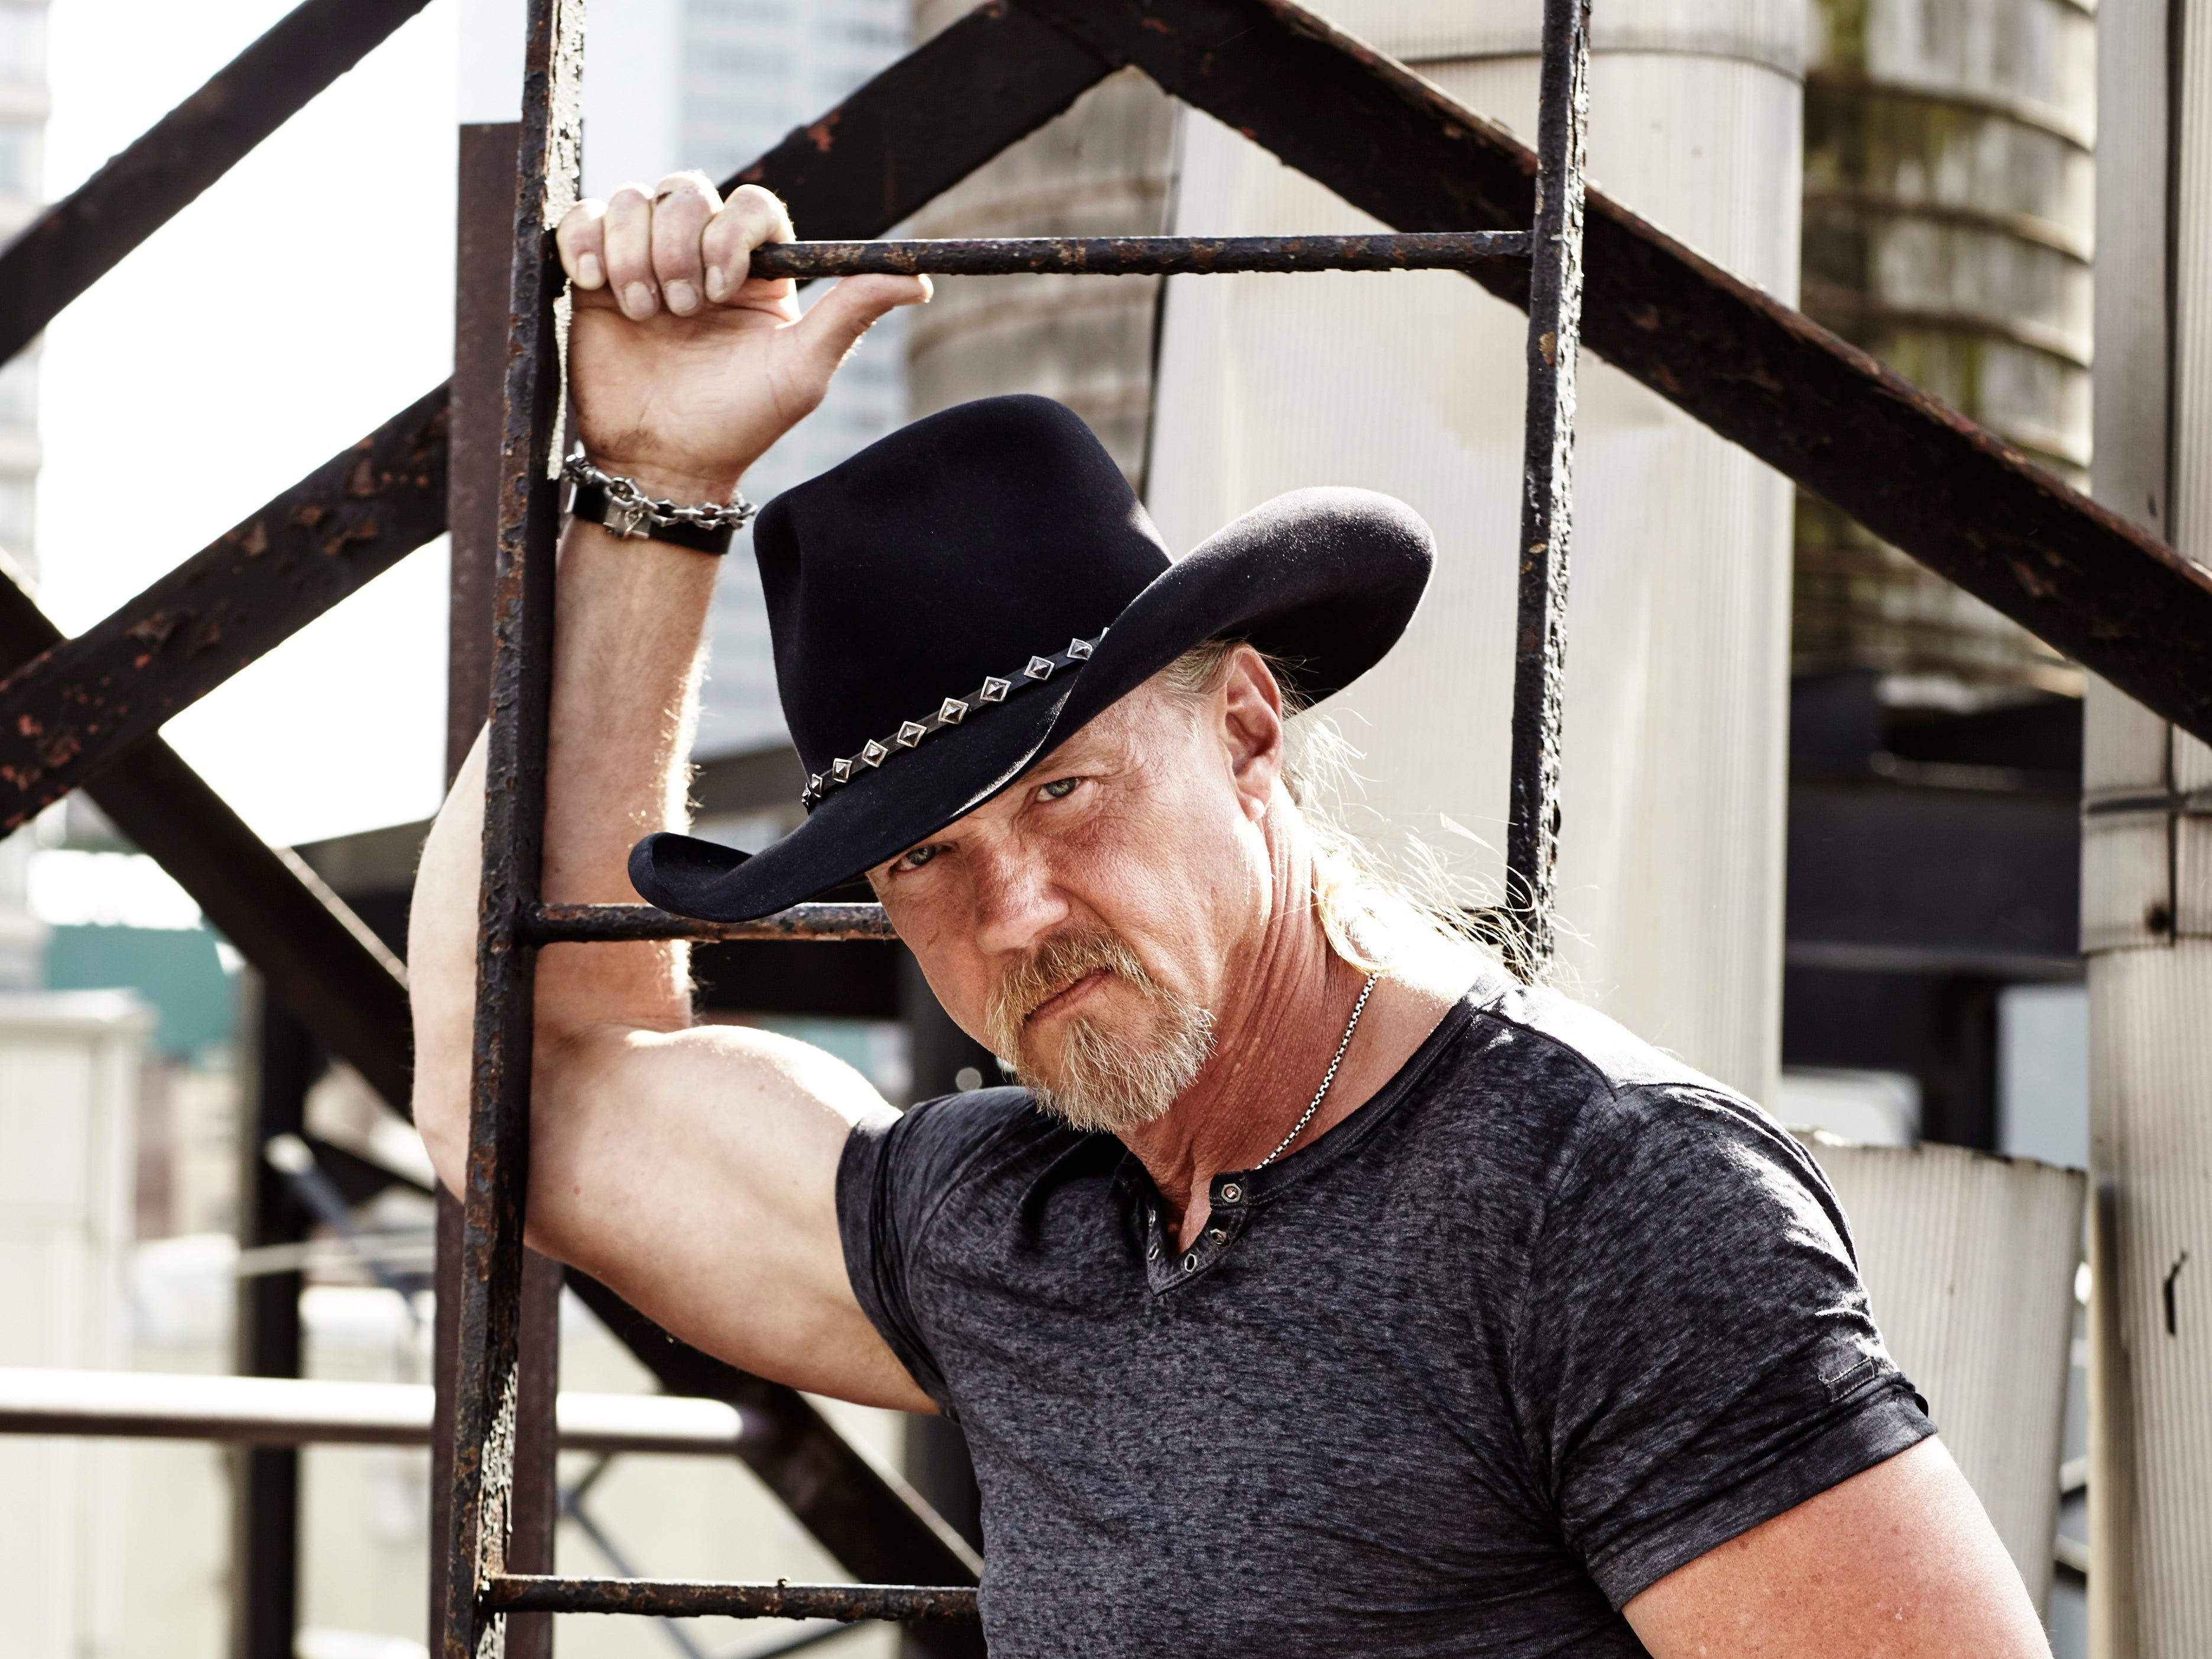 Country singer Trace Adkinswill perform in the Feb. 11th Borderline Strong show at the Thousand Oaks Civic Arts Plaza to assist the victims and families of the Nov.7 shooting at the Borderline Bar & Grill in Thousand Oaks.